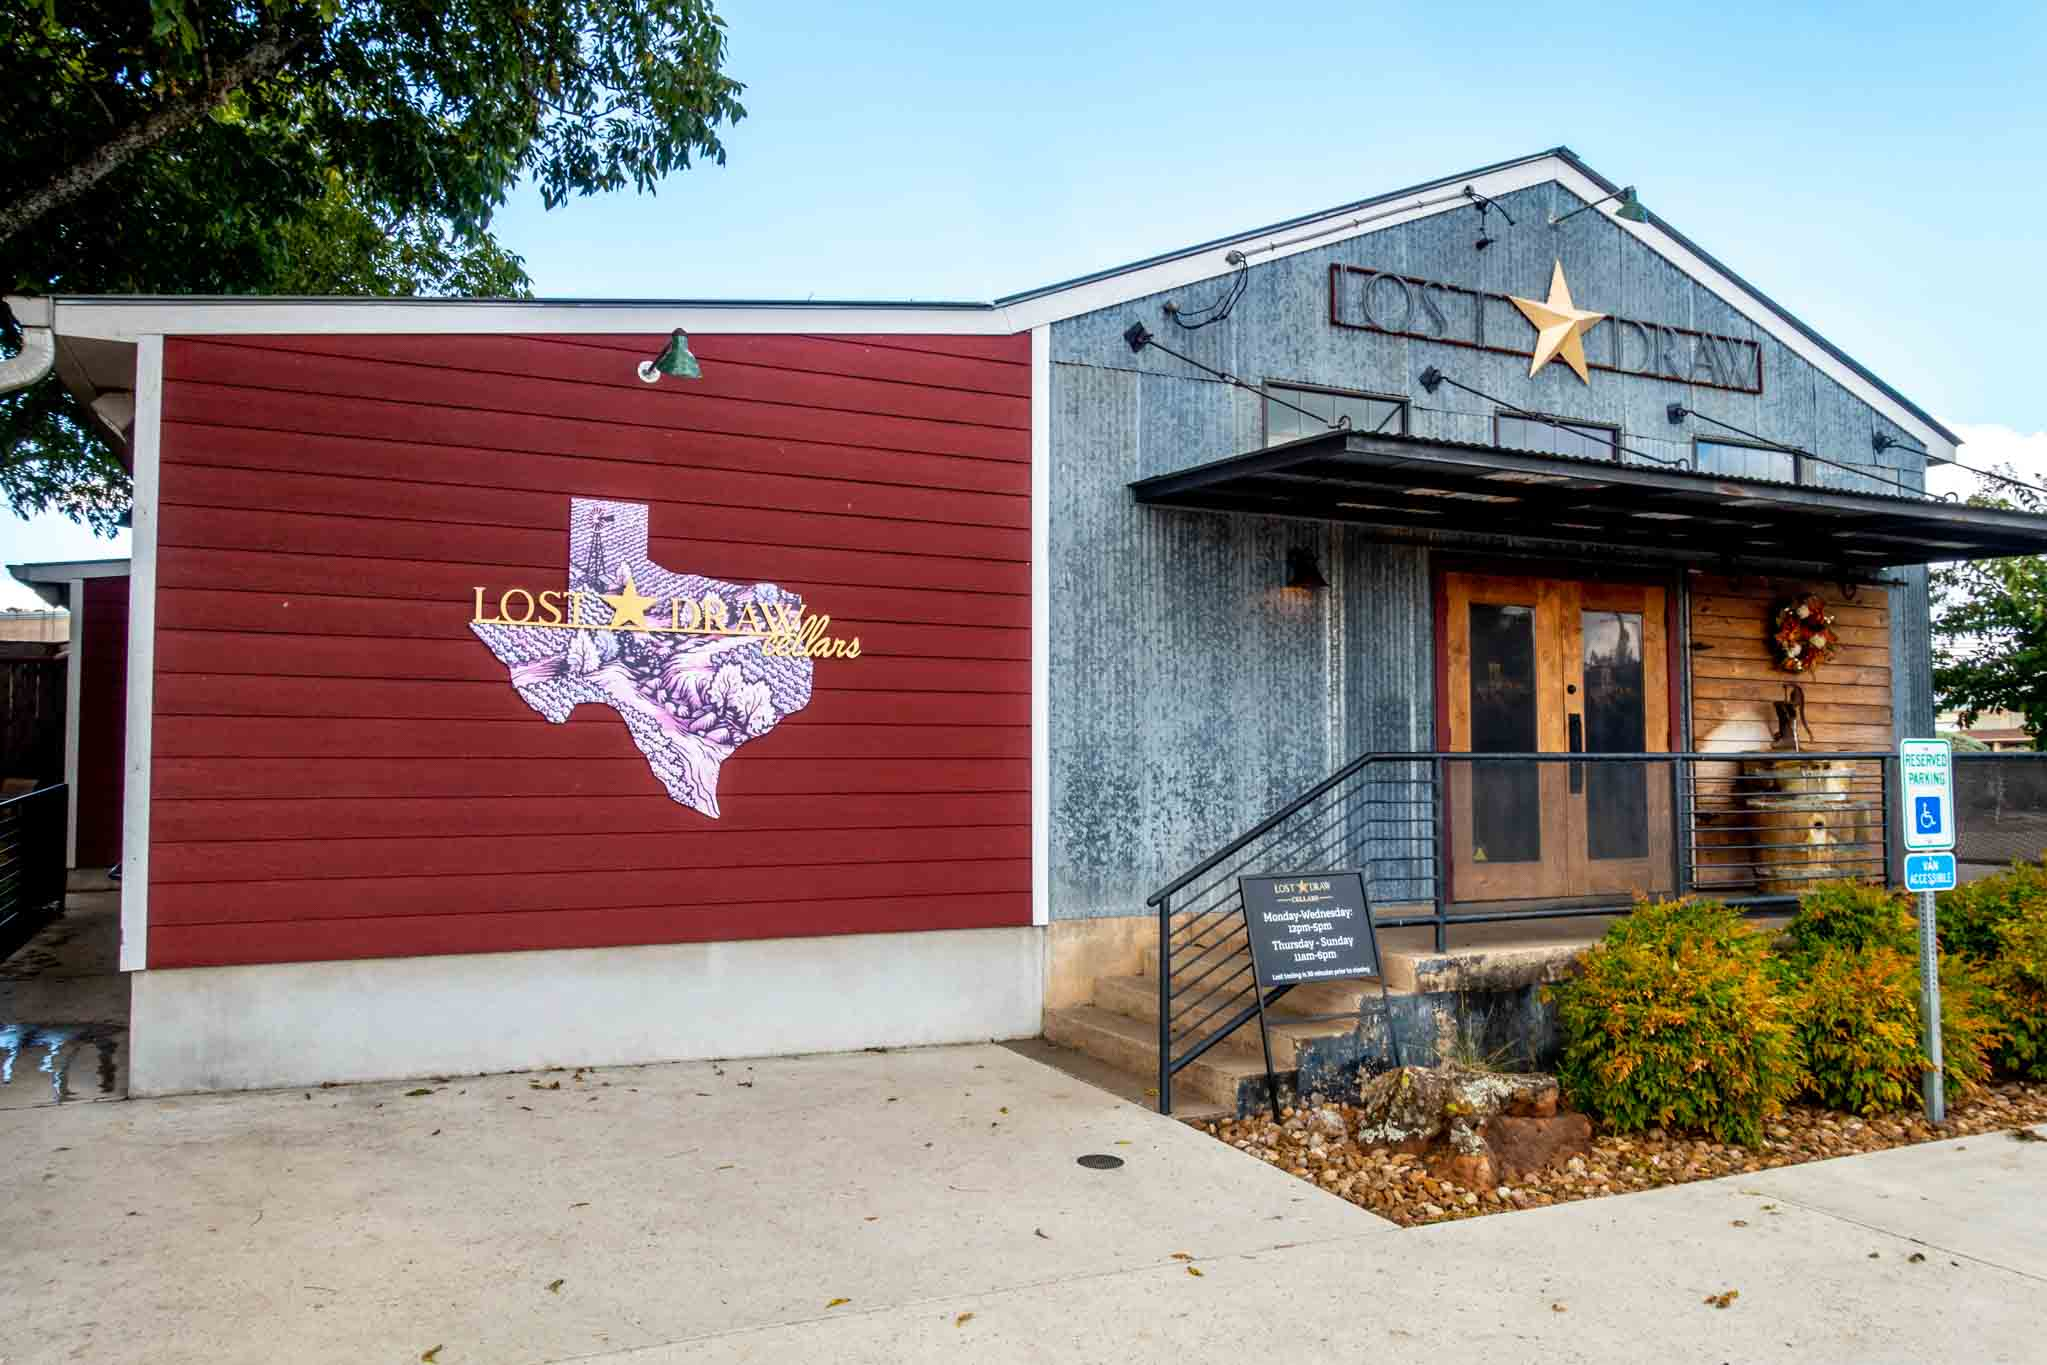 Exterior of Lost Draw tasting room with Texas-shaped logo and signs